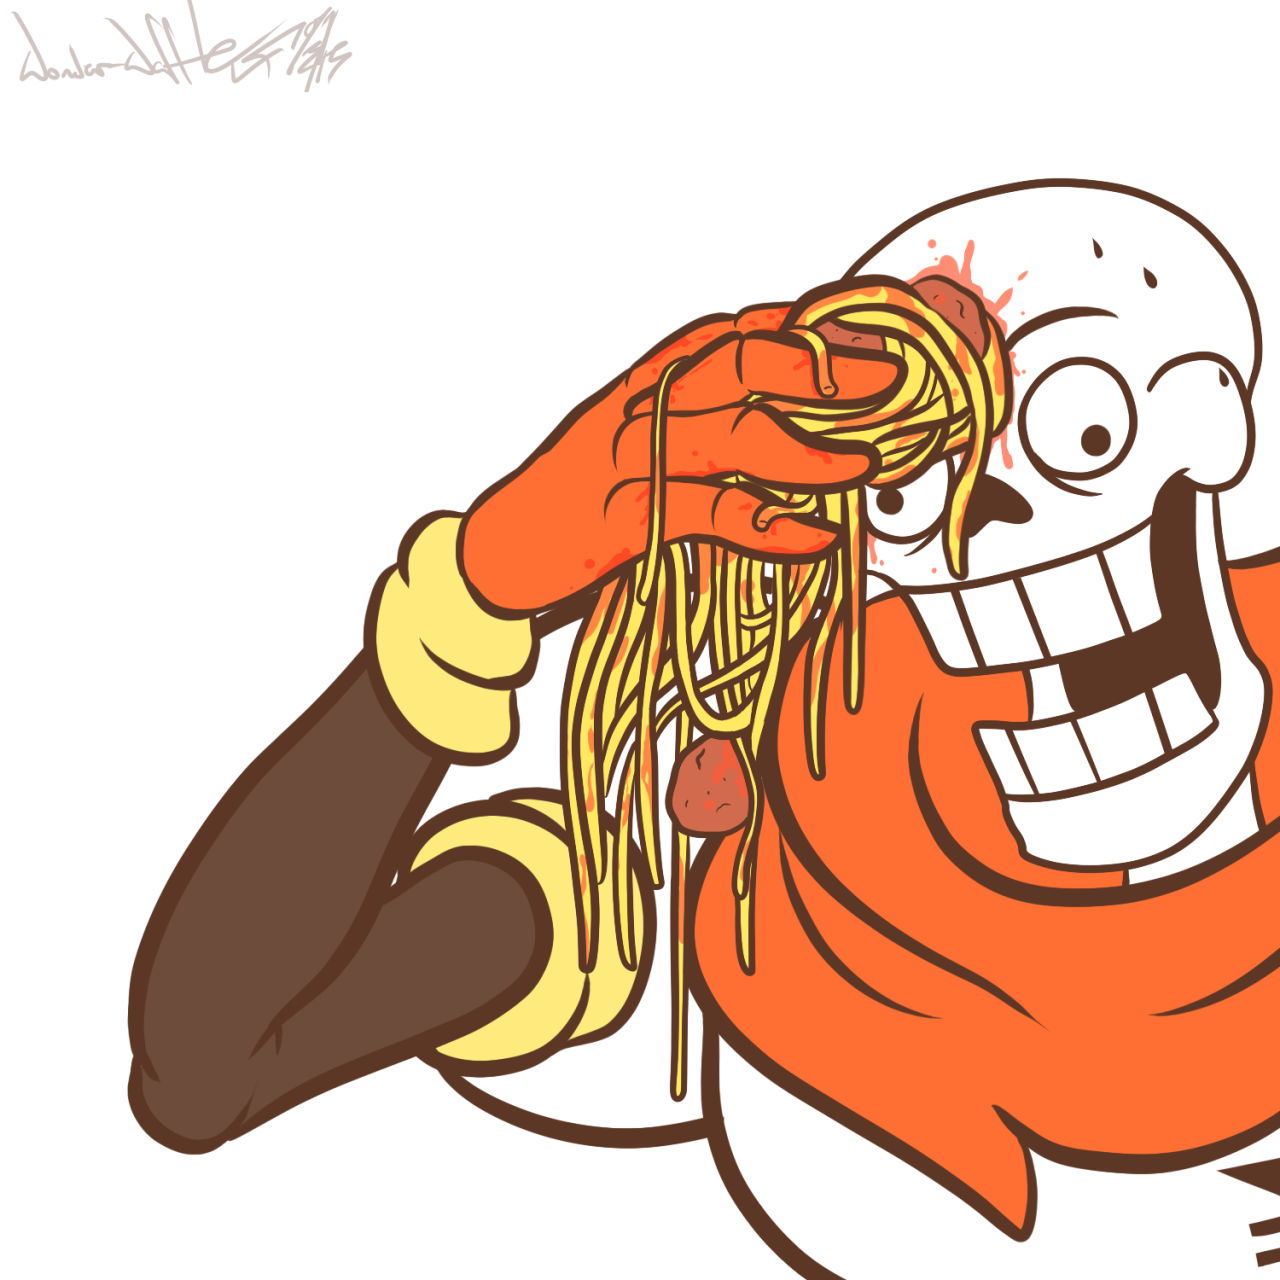 Towel To Wipe Sweat: Wiping Skeleton Sweat With Spaghetti